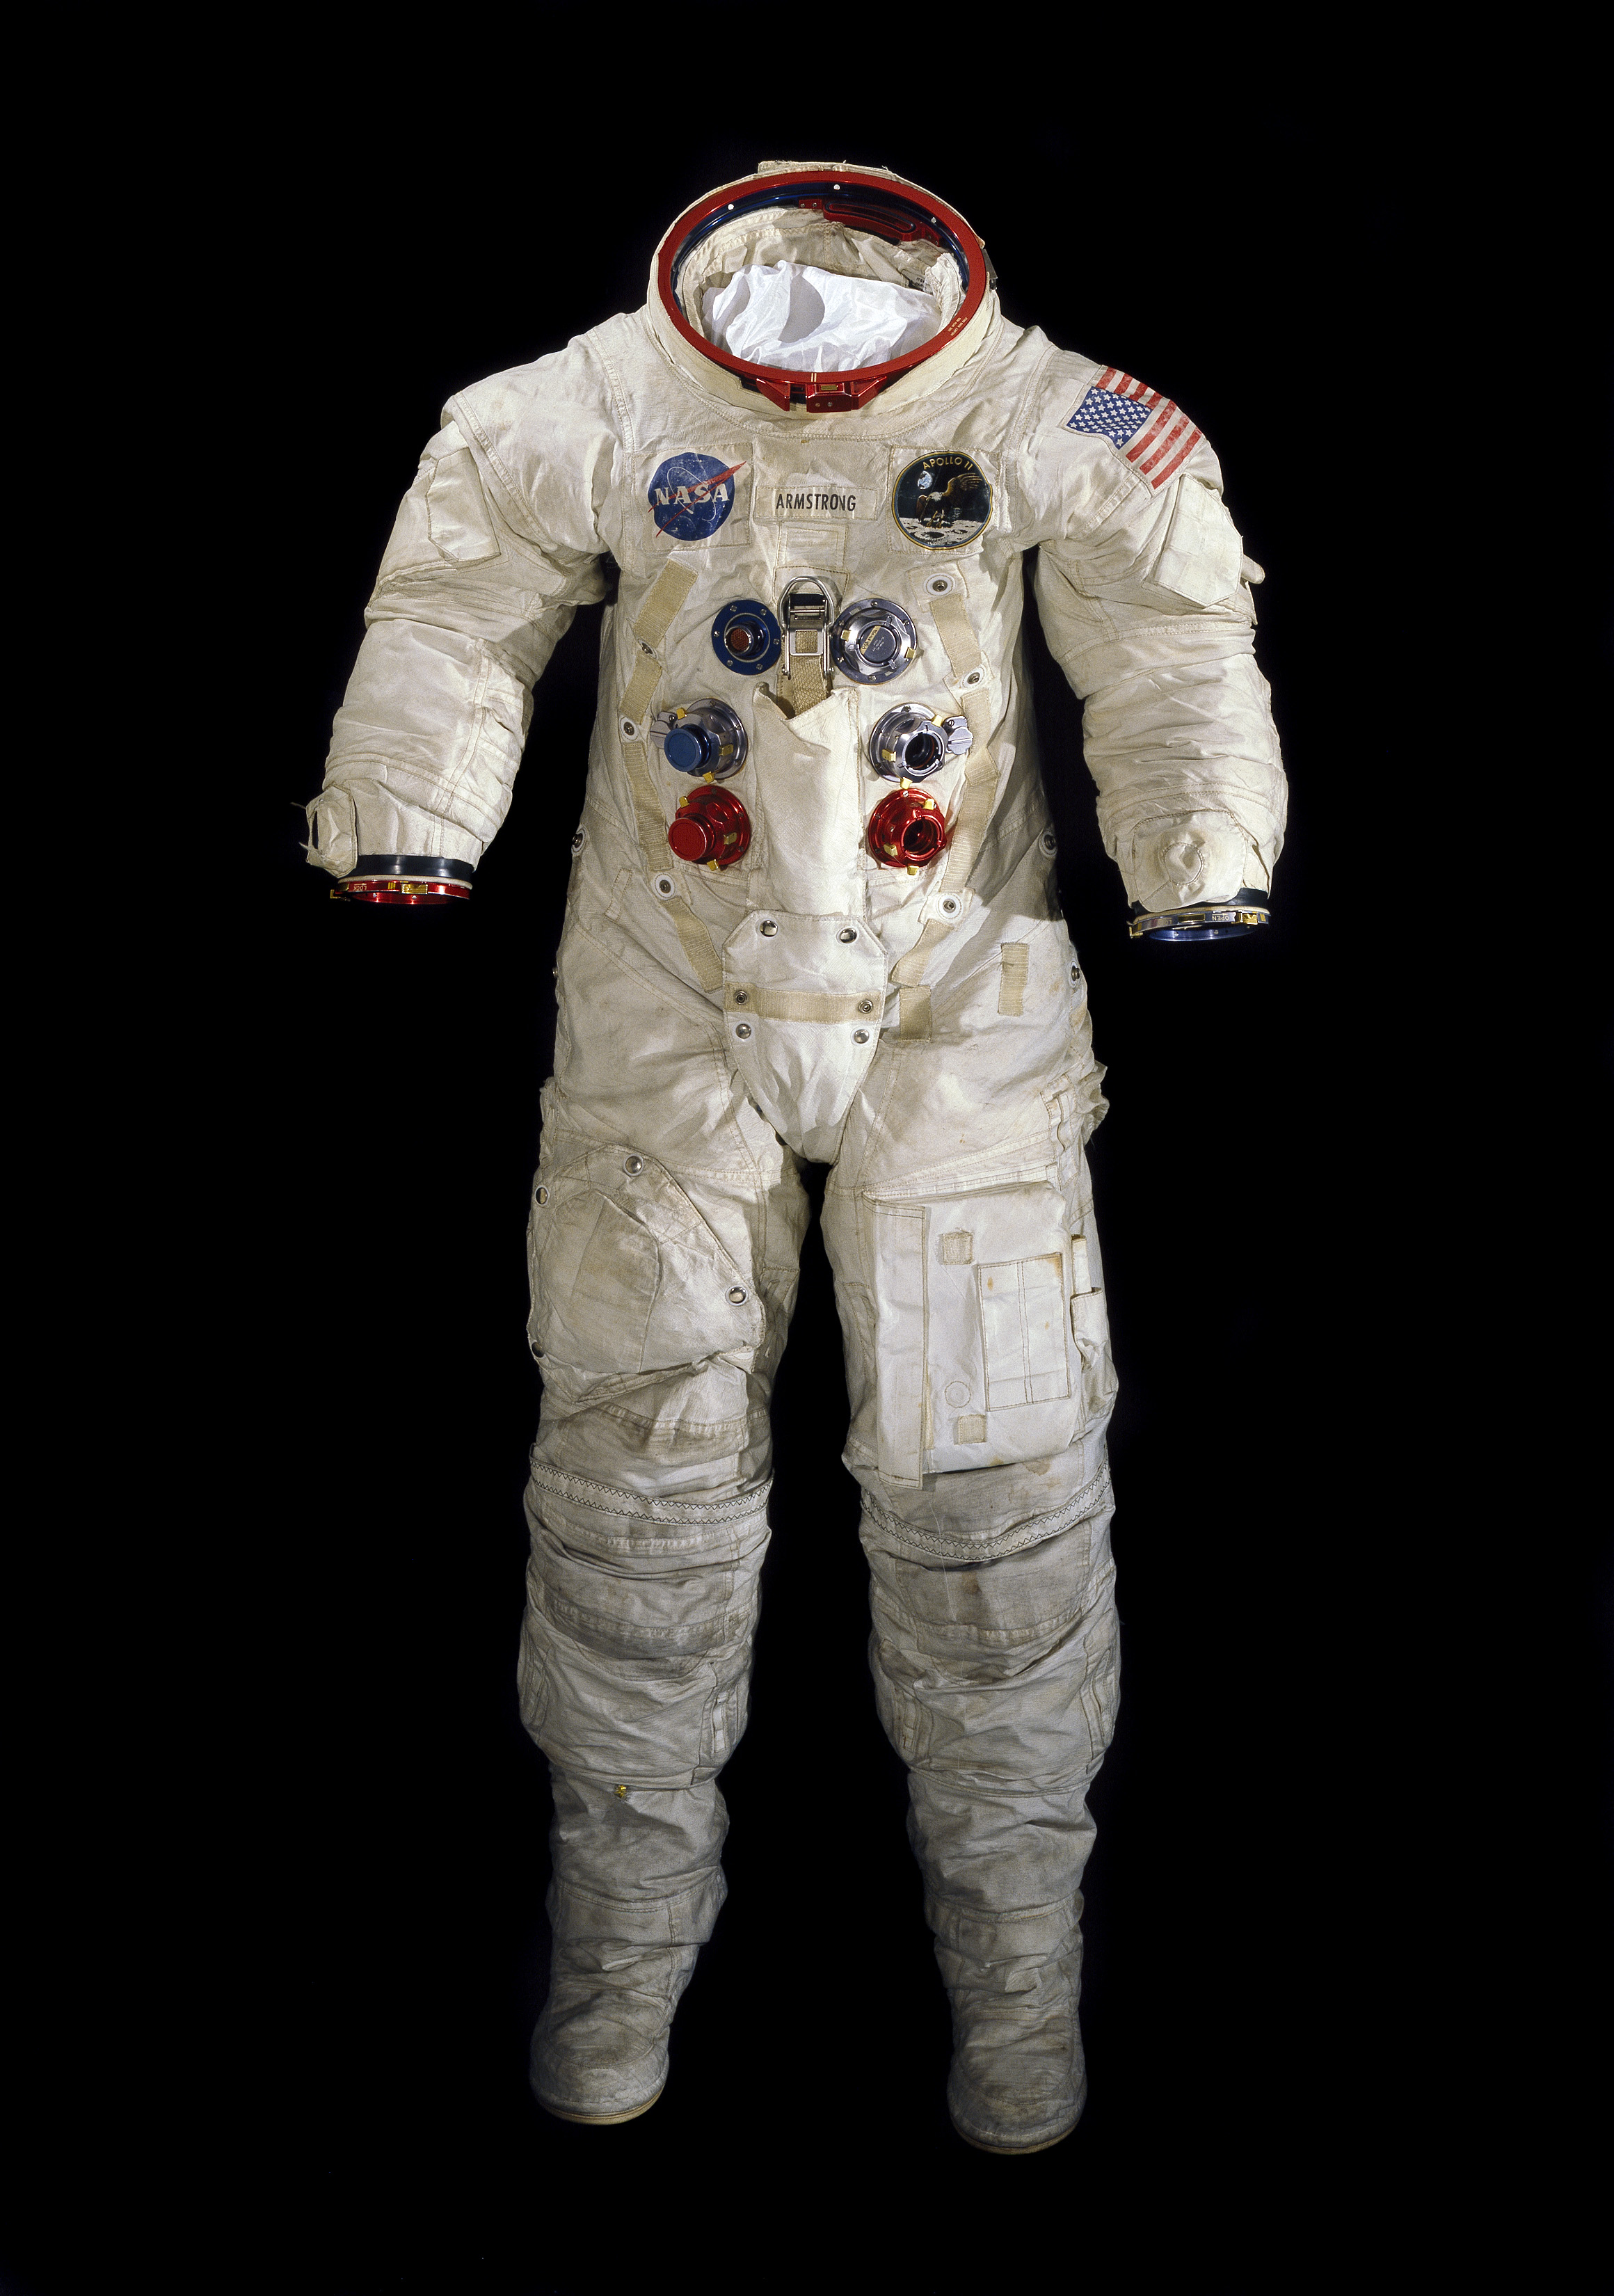 nasa space suit design waste collection - photo #22